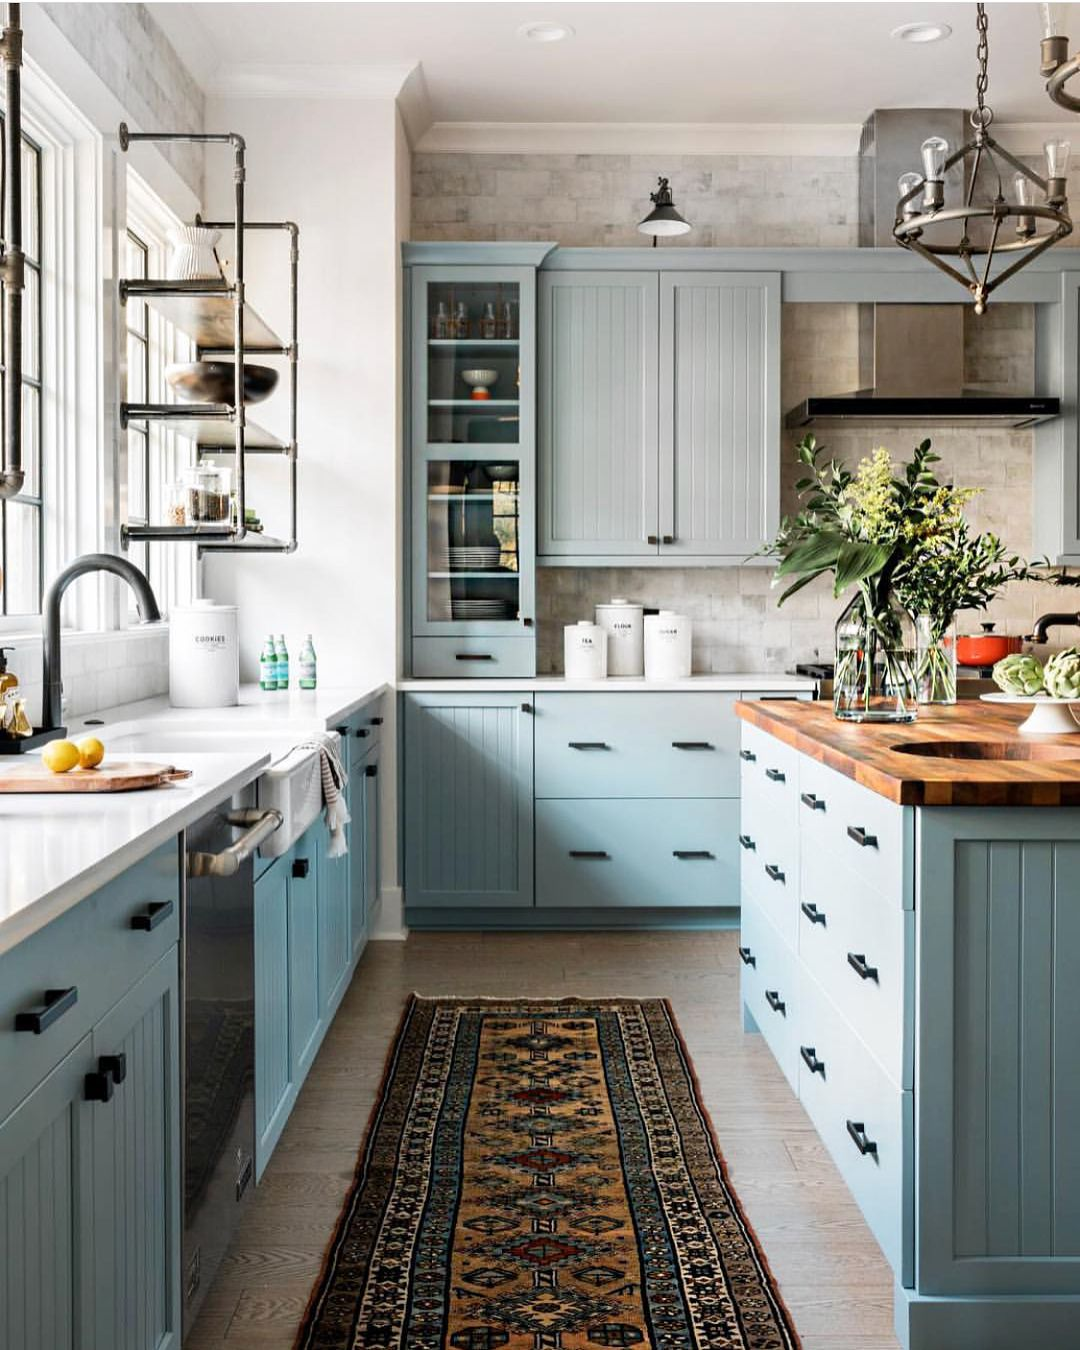 pale blue kitchen cabinets // beckiowens 🖤🖤 @hgtvhome and